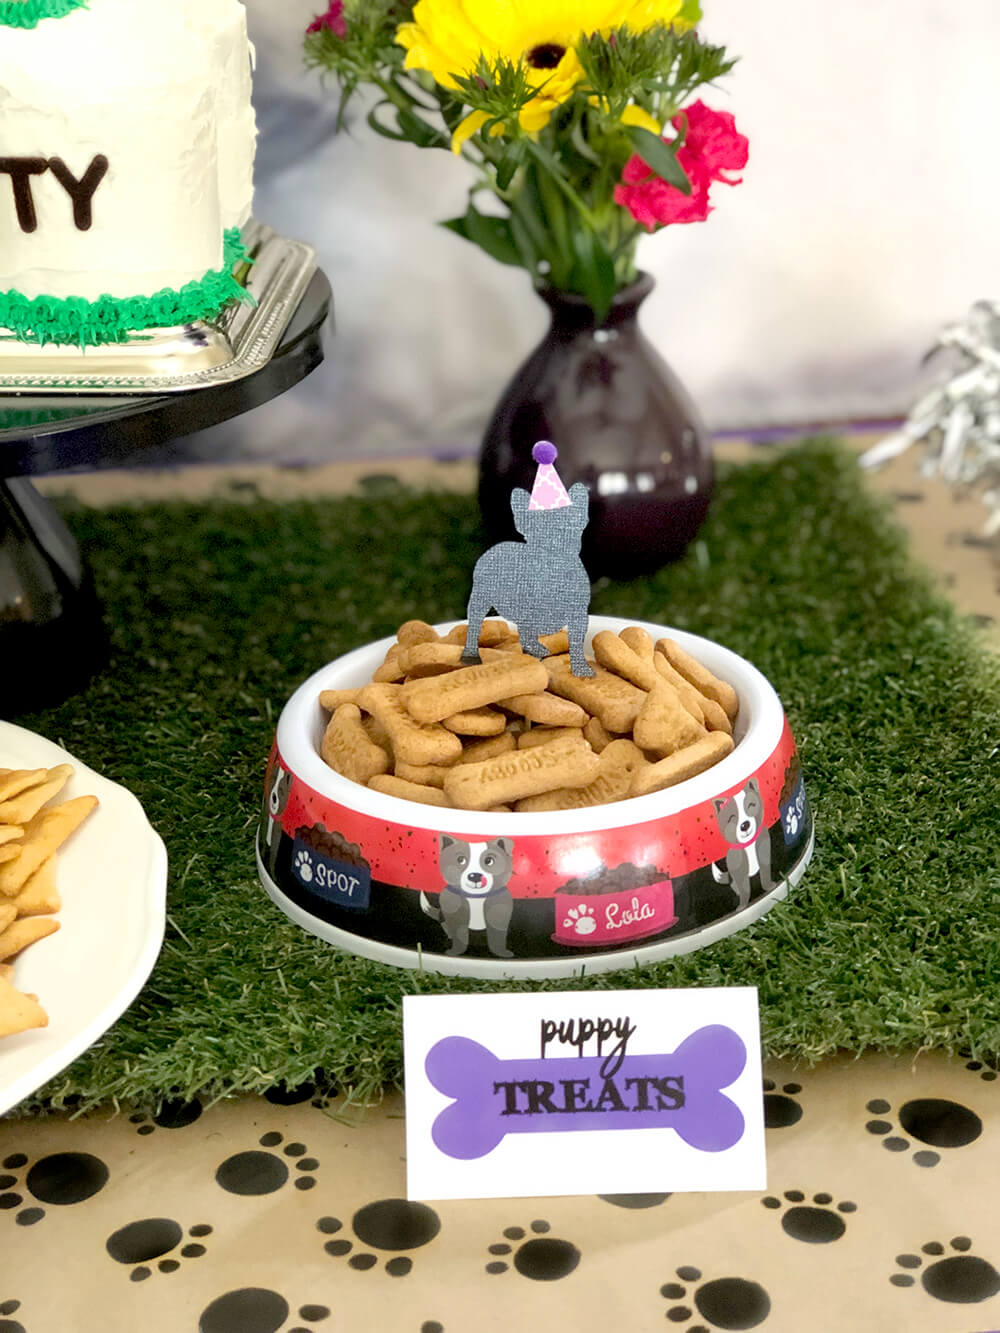 Dog bone shaped cookies as Puppy treats - Puppy Themed Birthday Party Food Ideas